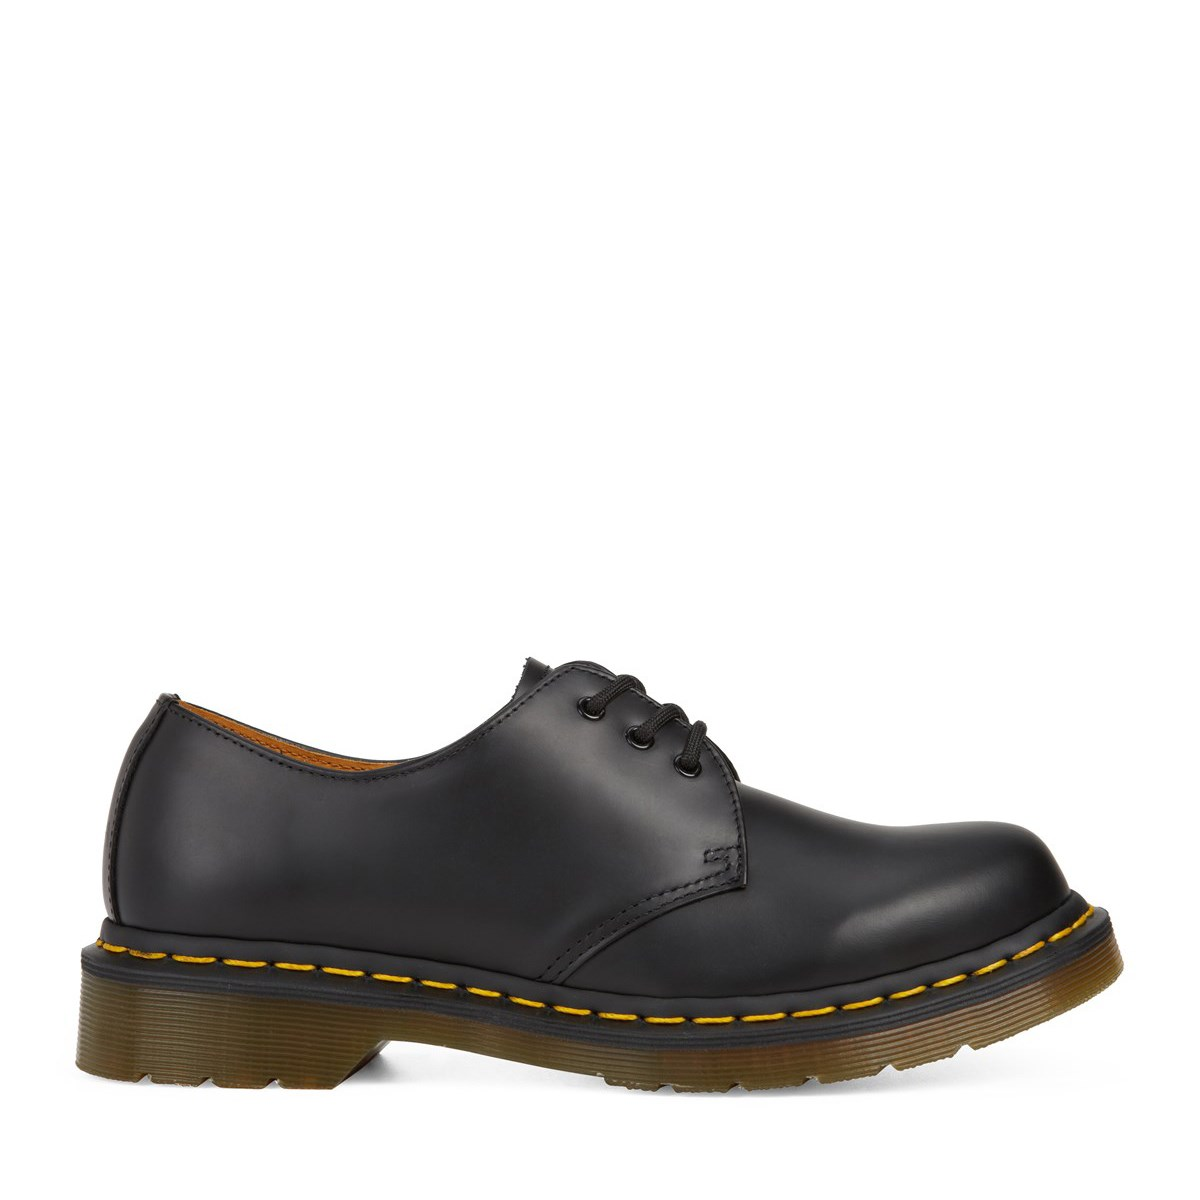 Men's 1461 Smooth Leather Shoes in Black